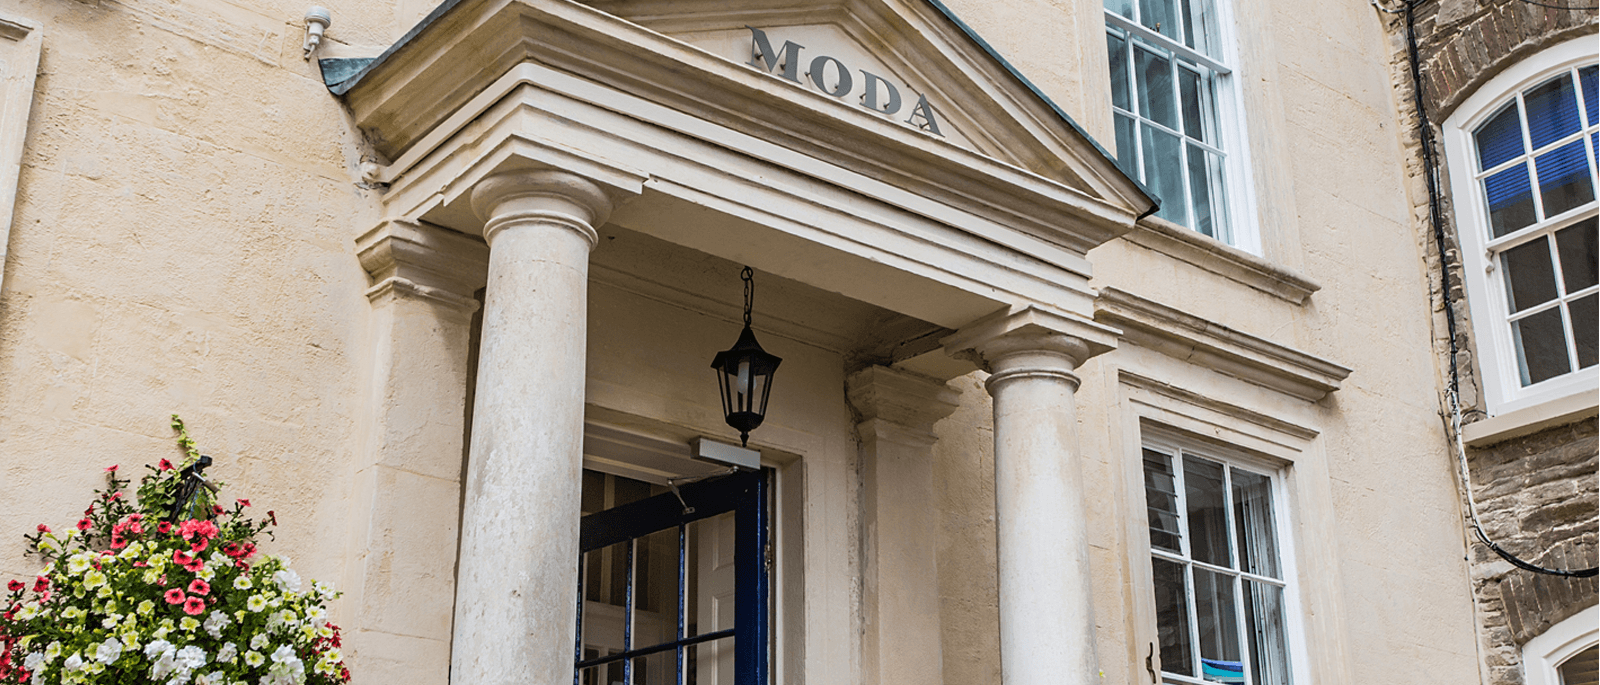 The Moda House Bed & Breakfast, Chipping Sodbury, Bristol